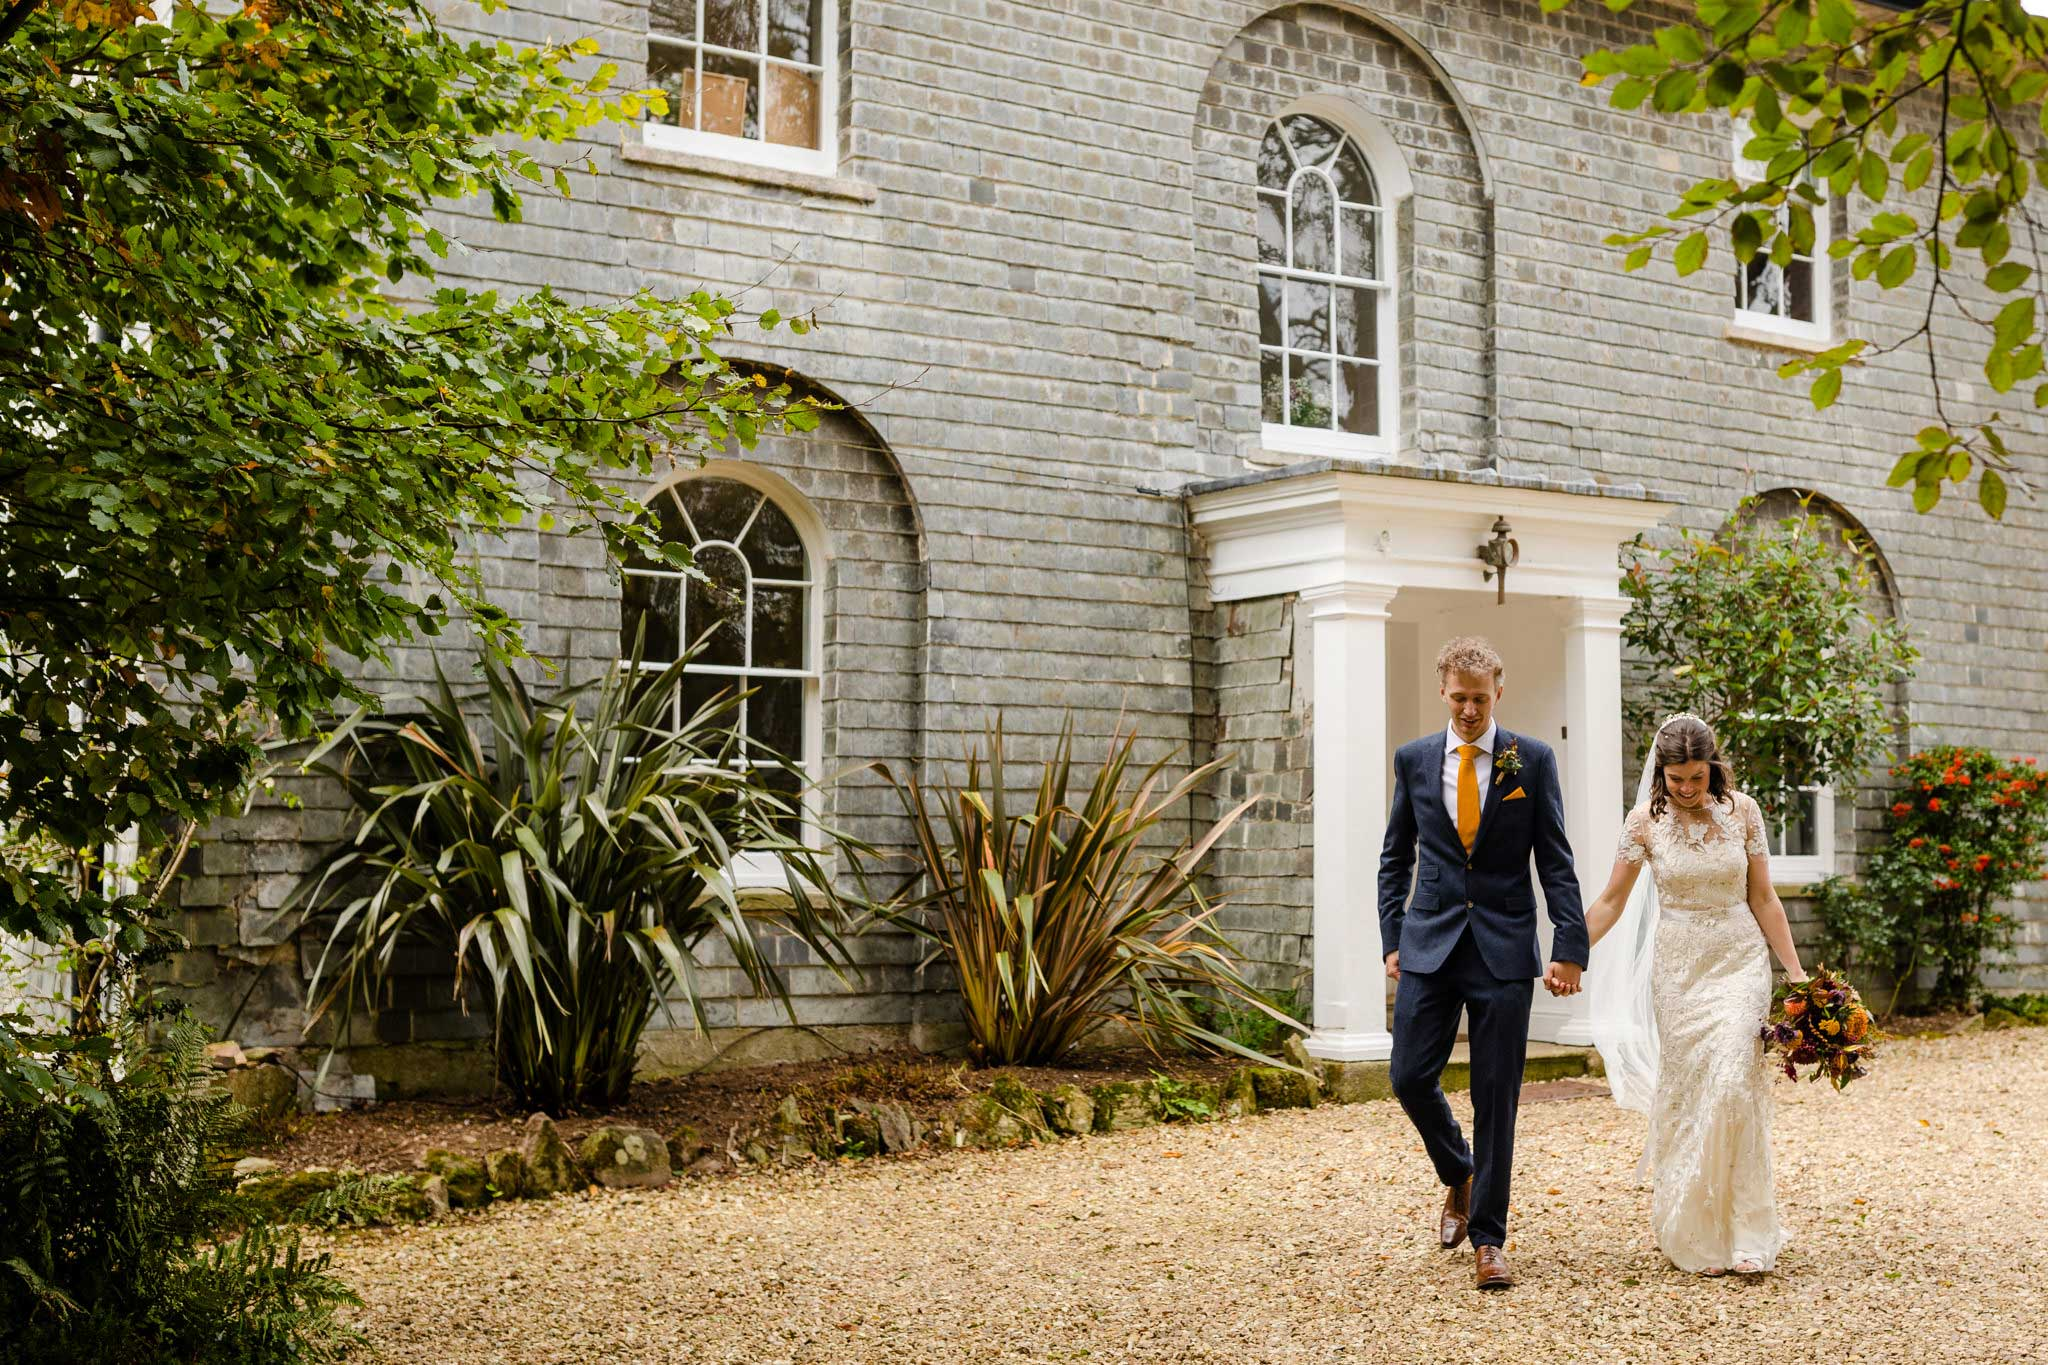 bride and groom outside country house wedding venue